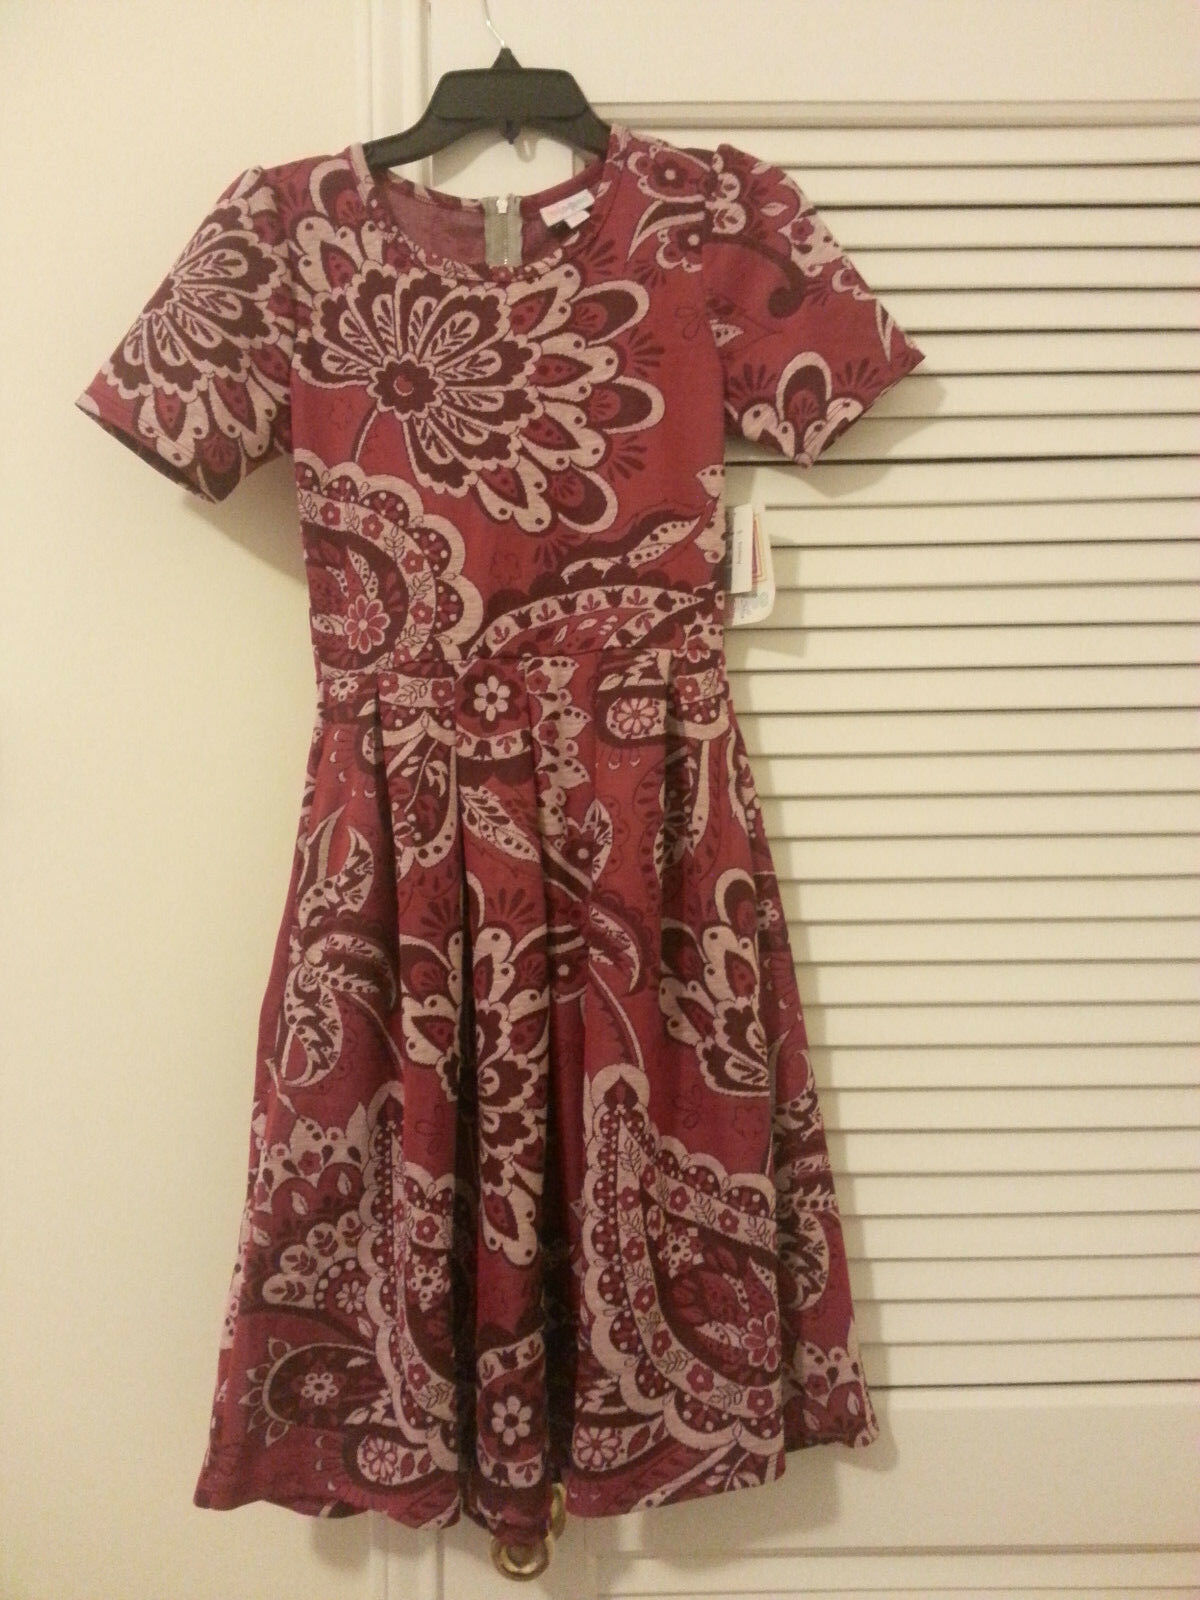 NWT LuLaRoe Amelia Dress - Red Maroon Floral    Size  Small  S- New With Tags